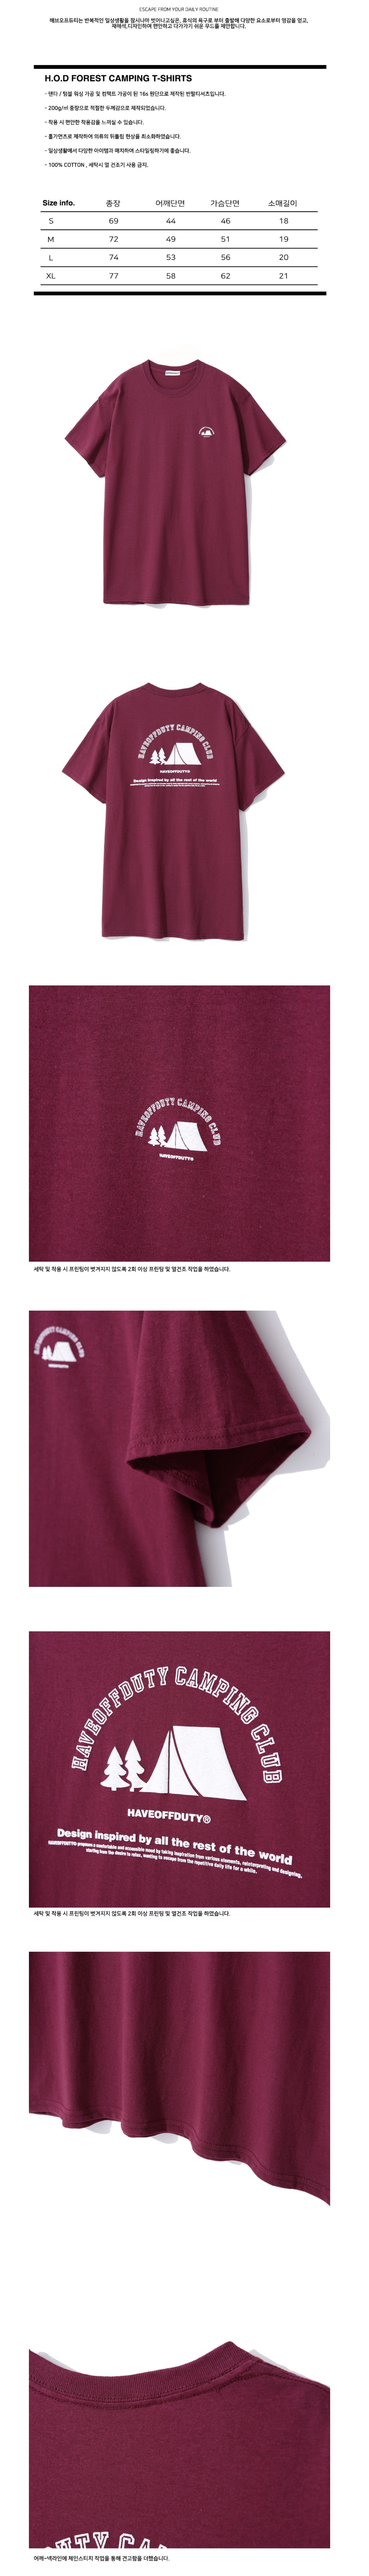 FOREST CAMPING T-SHITS (WINE)